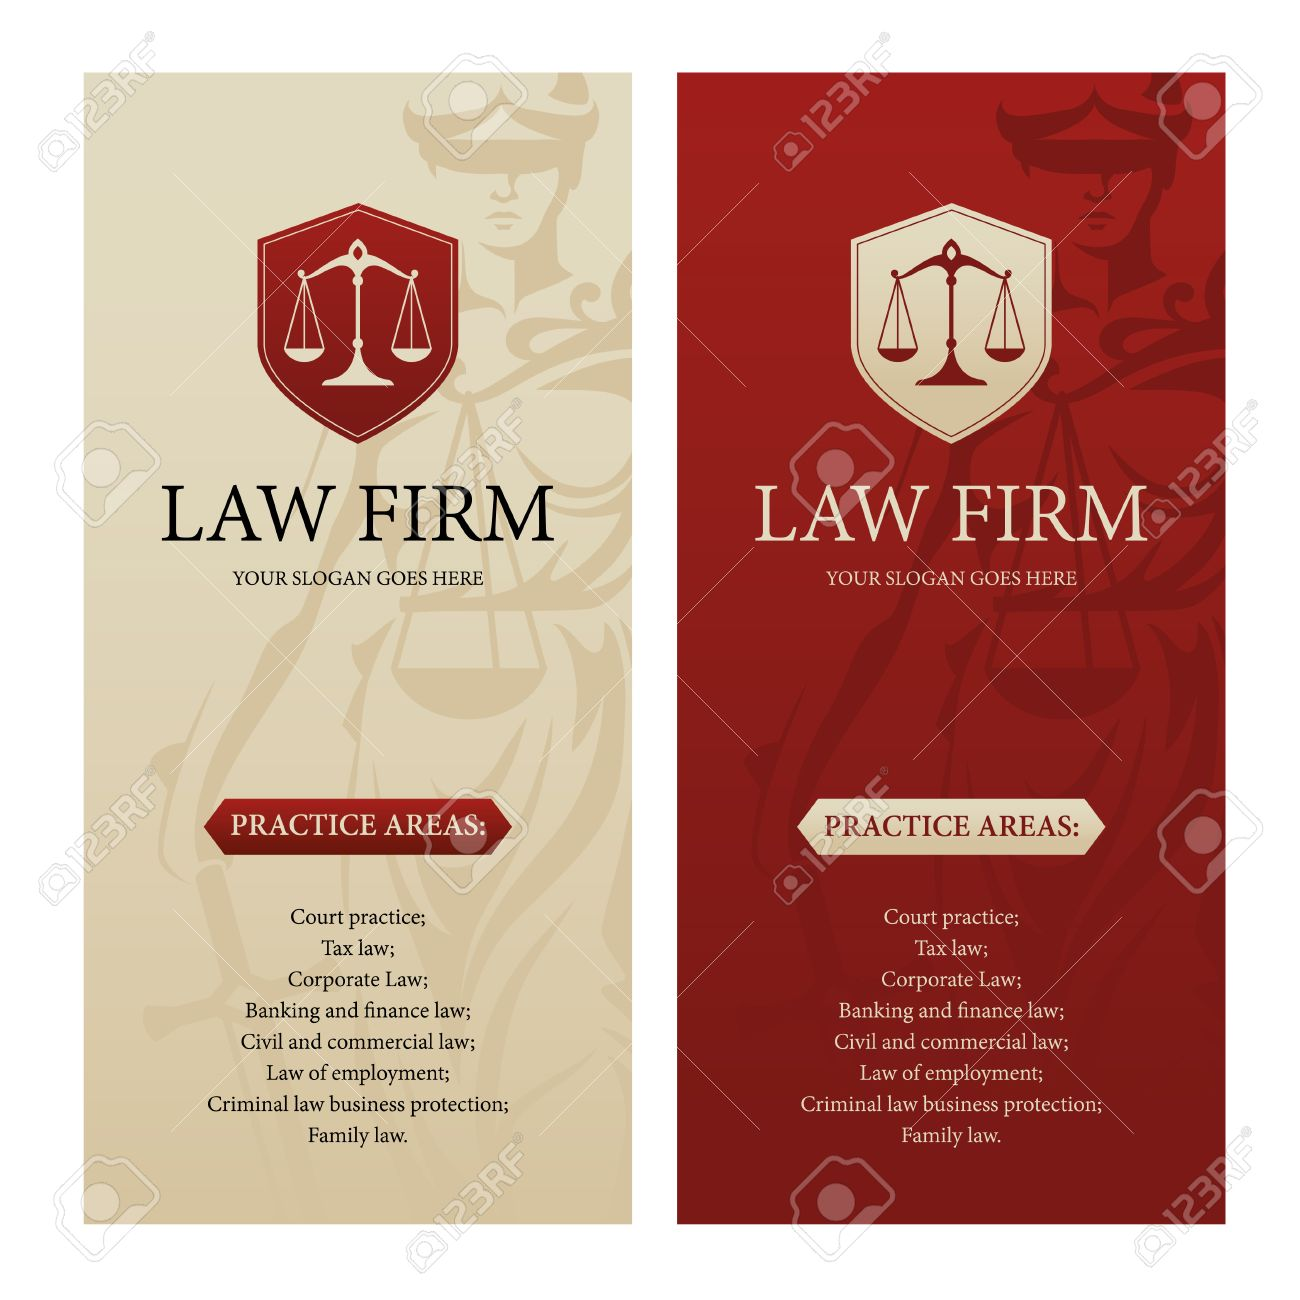 Great Vertical Design Template For Law Office, Firm Or Company With Justice  Scales Logo And Themis